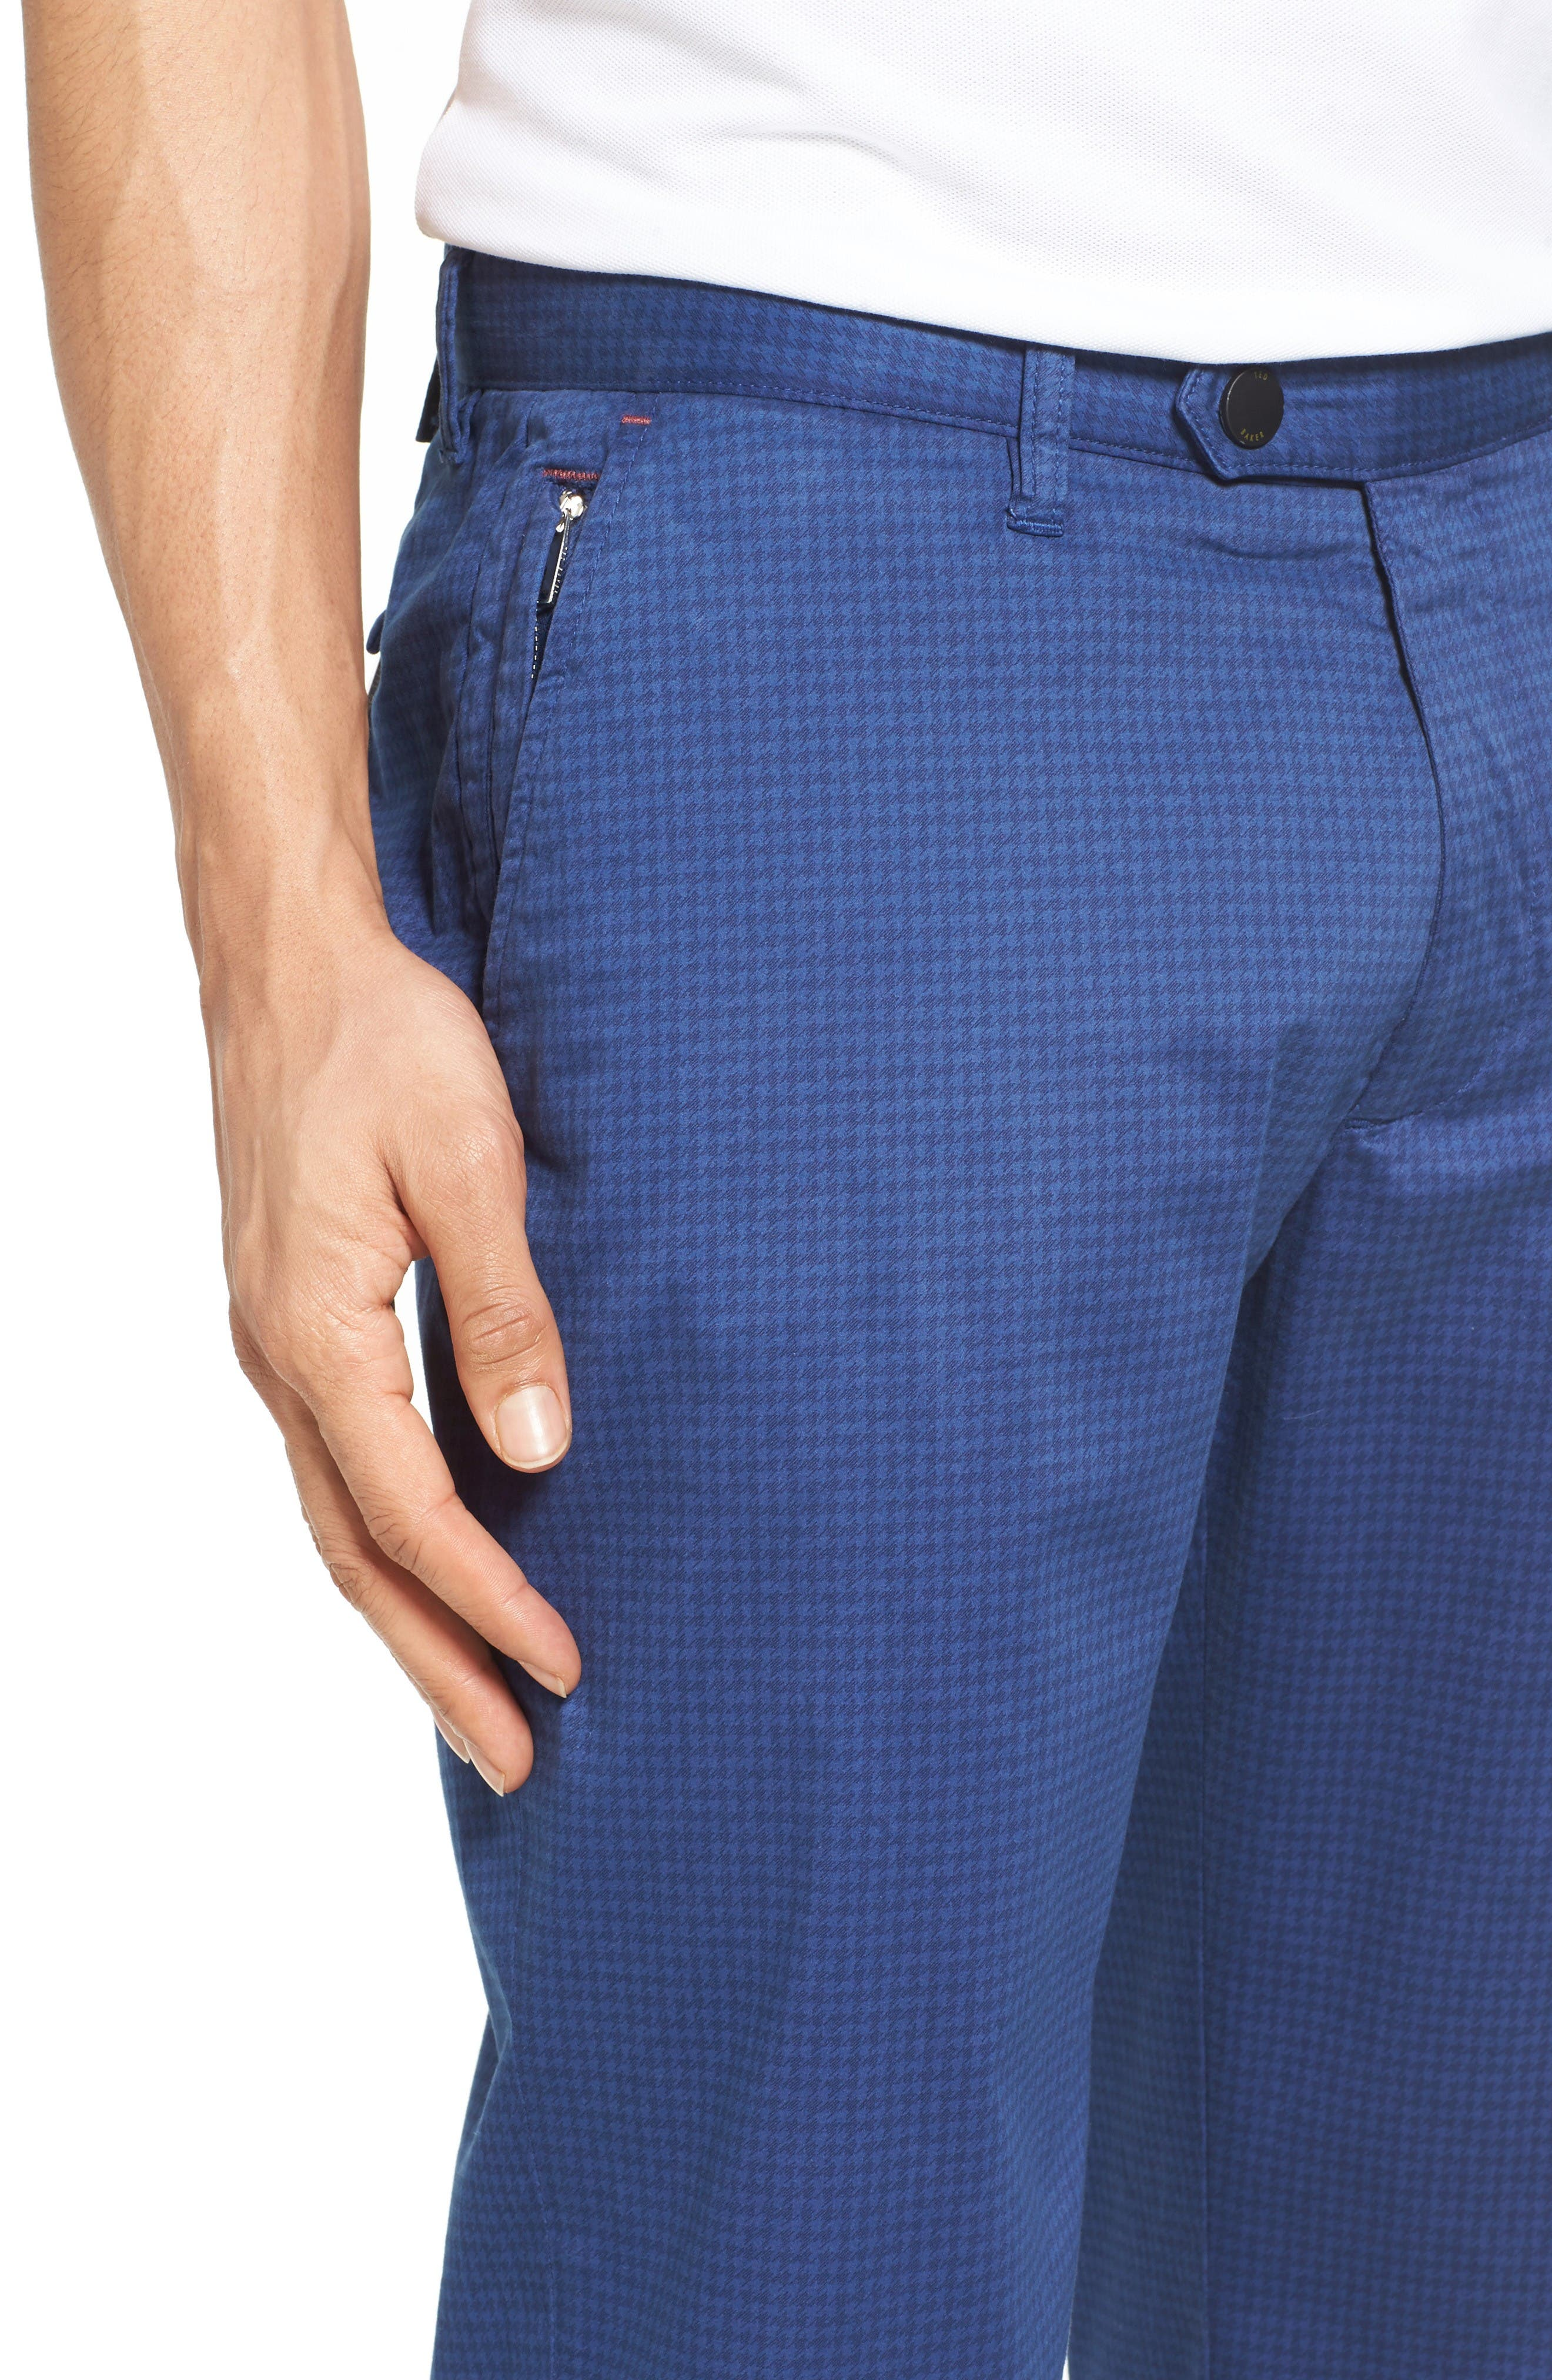 Houndstooth Print Golf Chinos,                             Alternate thumbnail 4, color,                             Blue